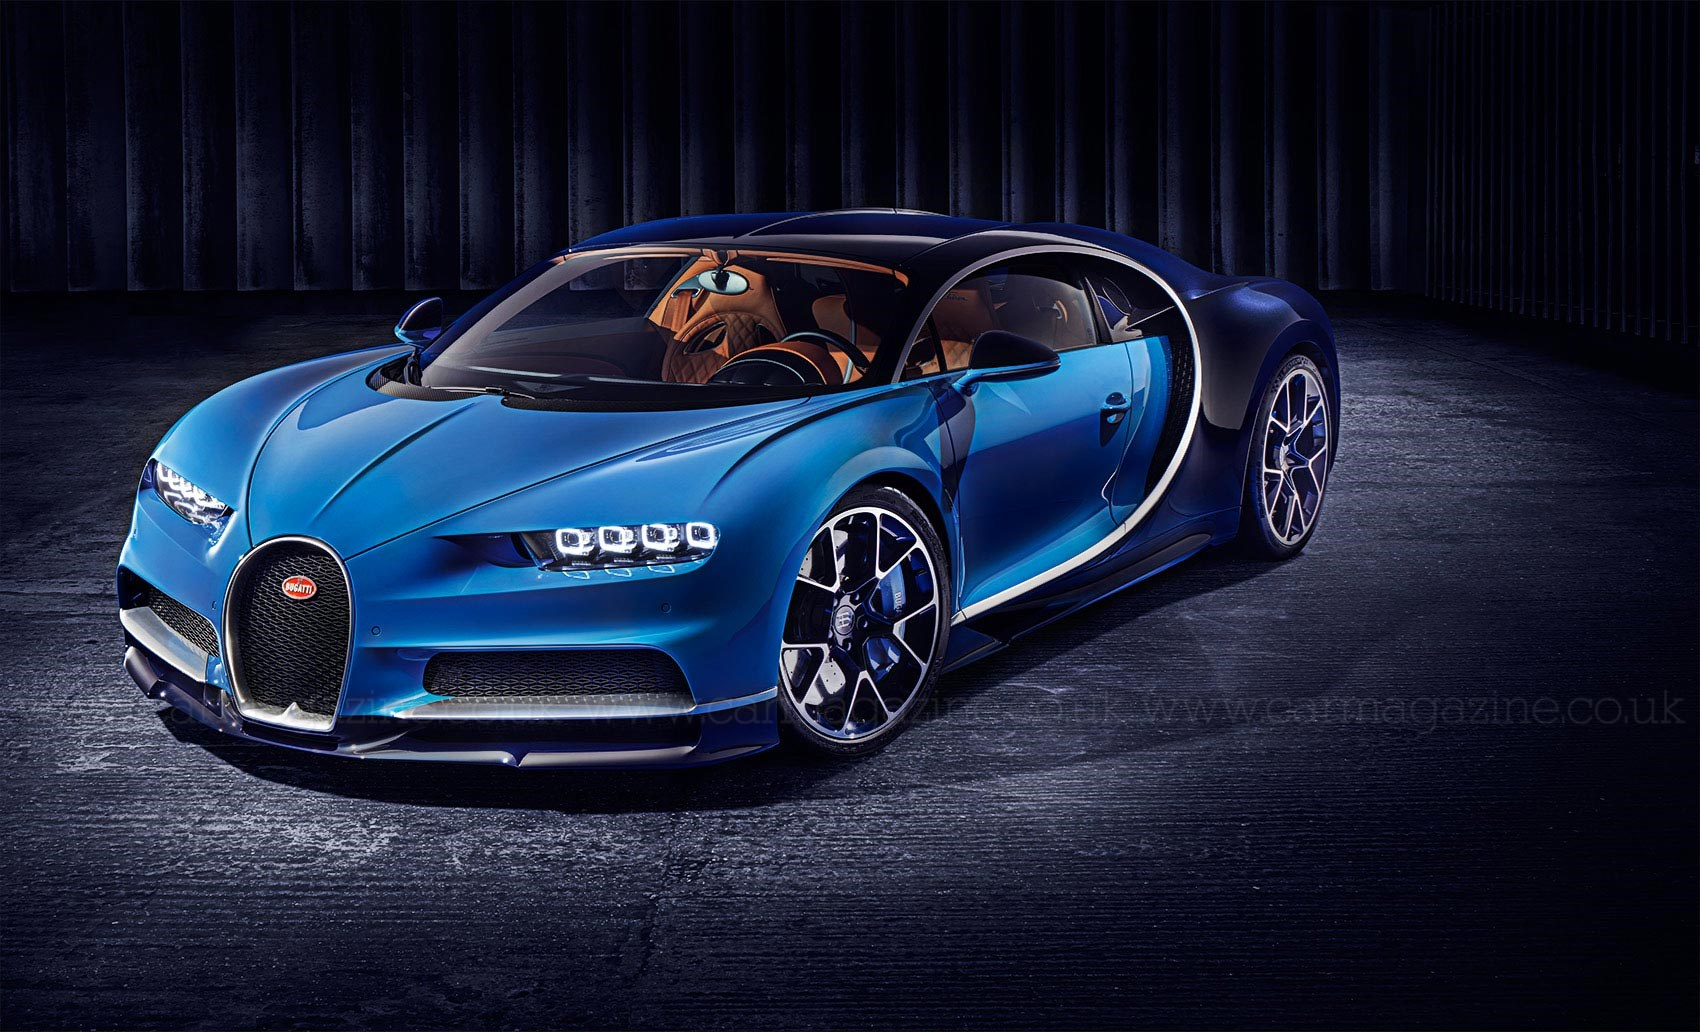 An Exclusive In-depth Look At The New Bugatti Chiron By